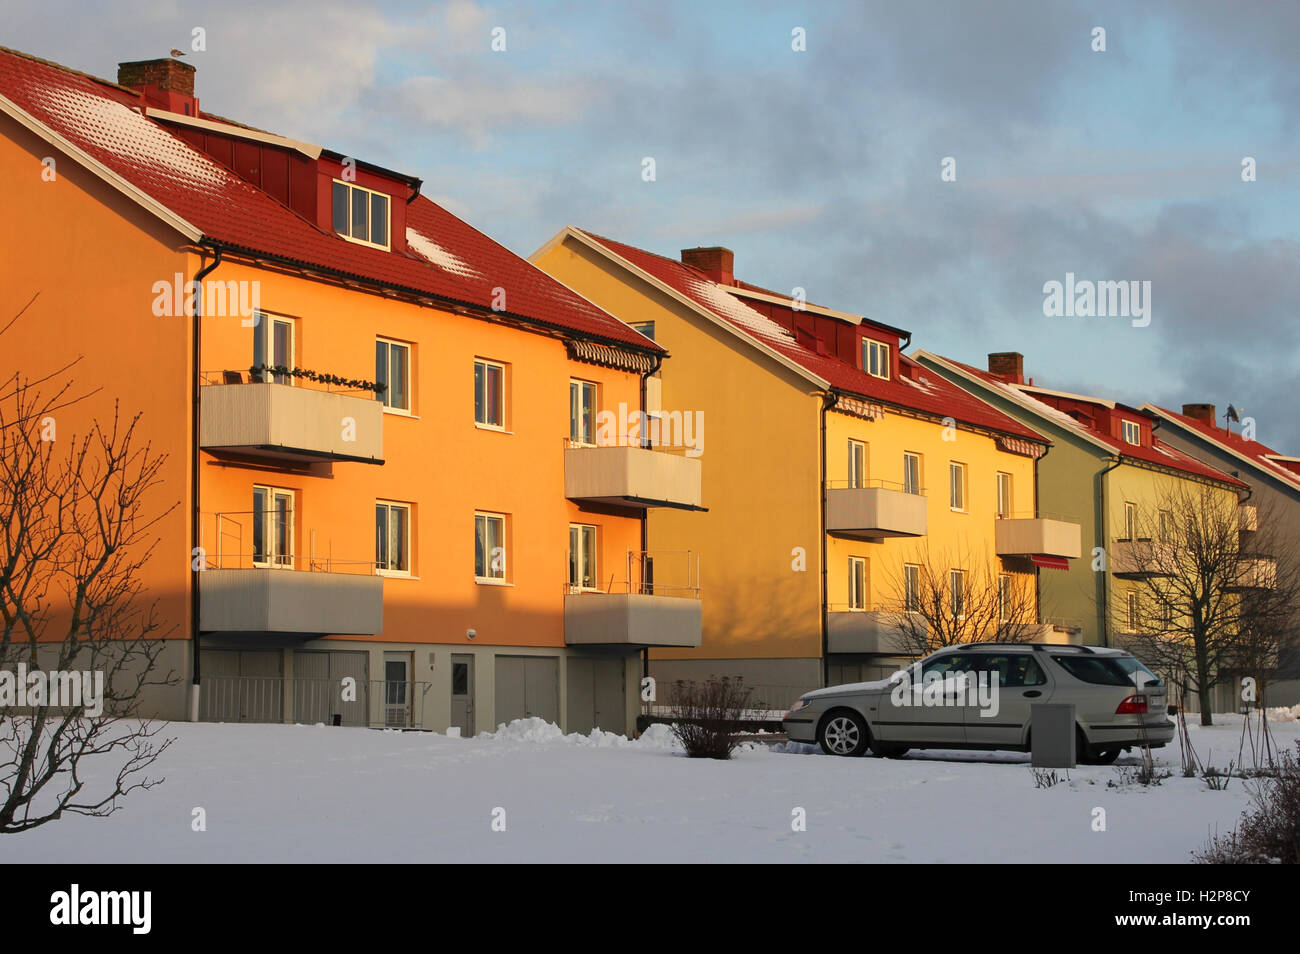 Mid-century apartment buildings, Alingsås, Sweden - Stock Image